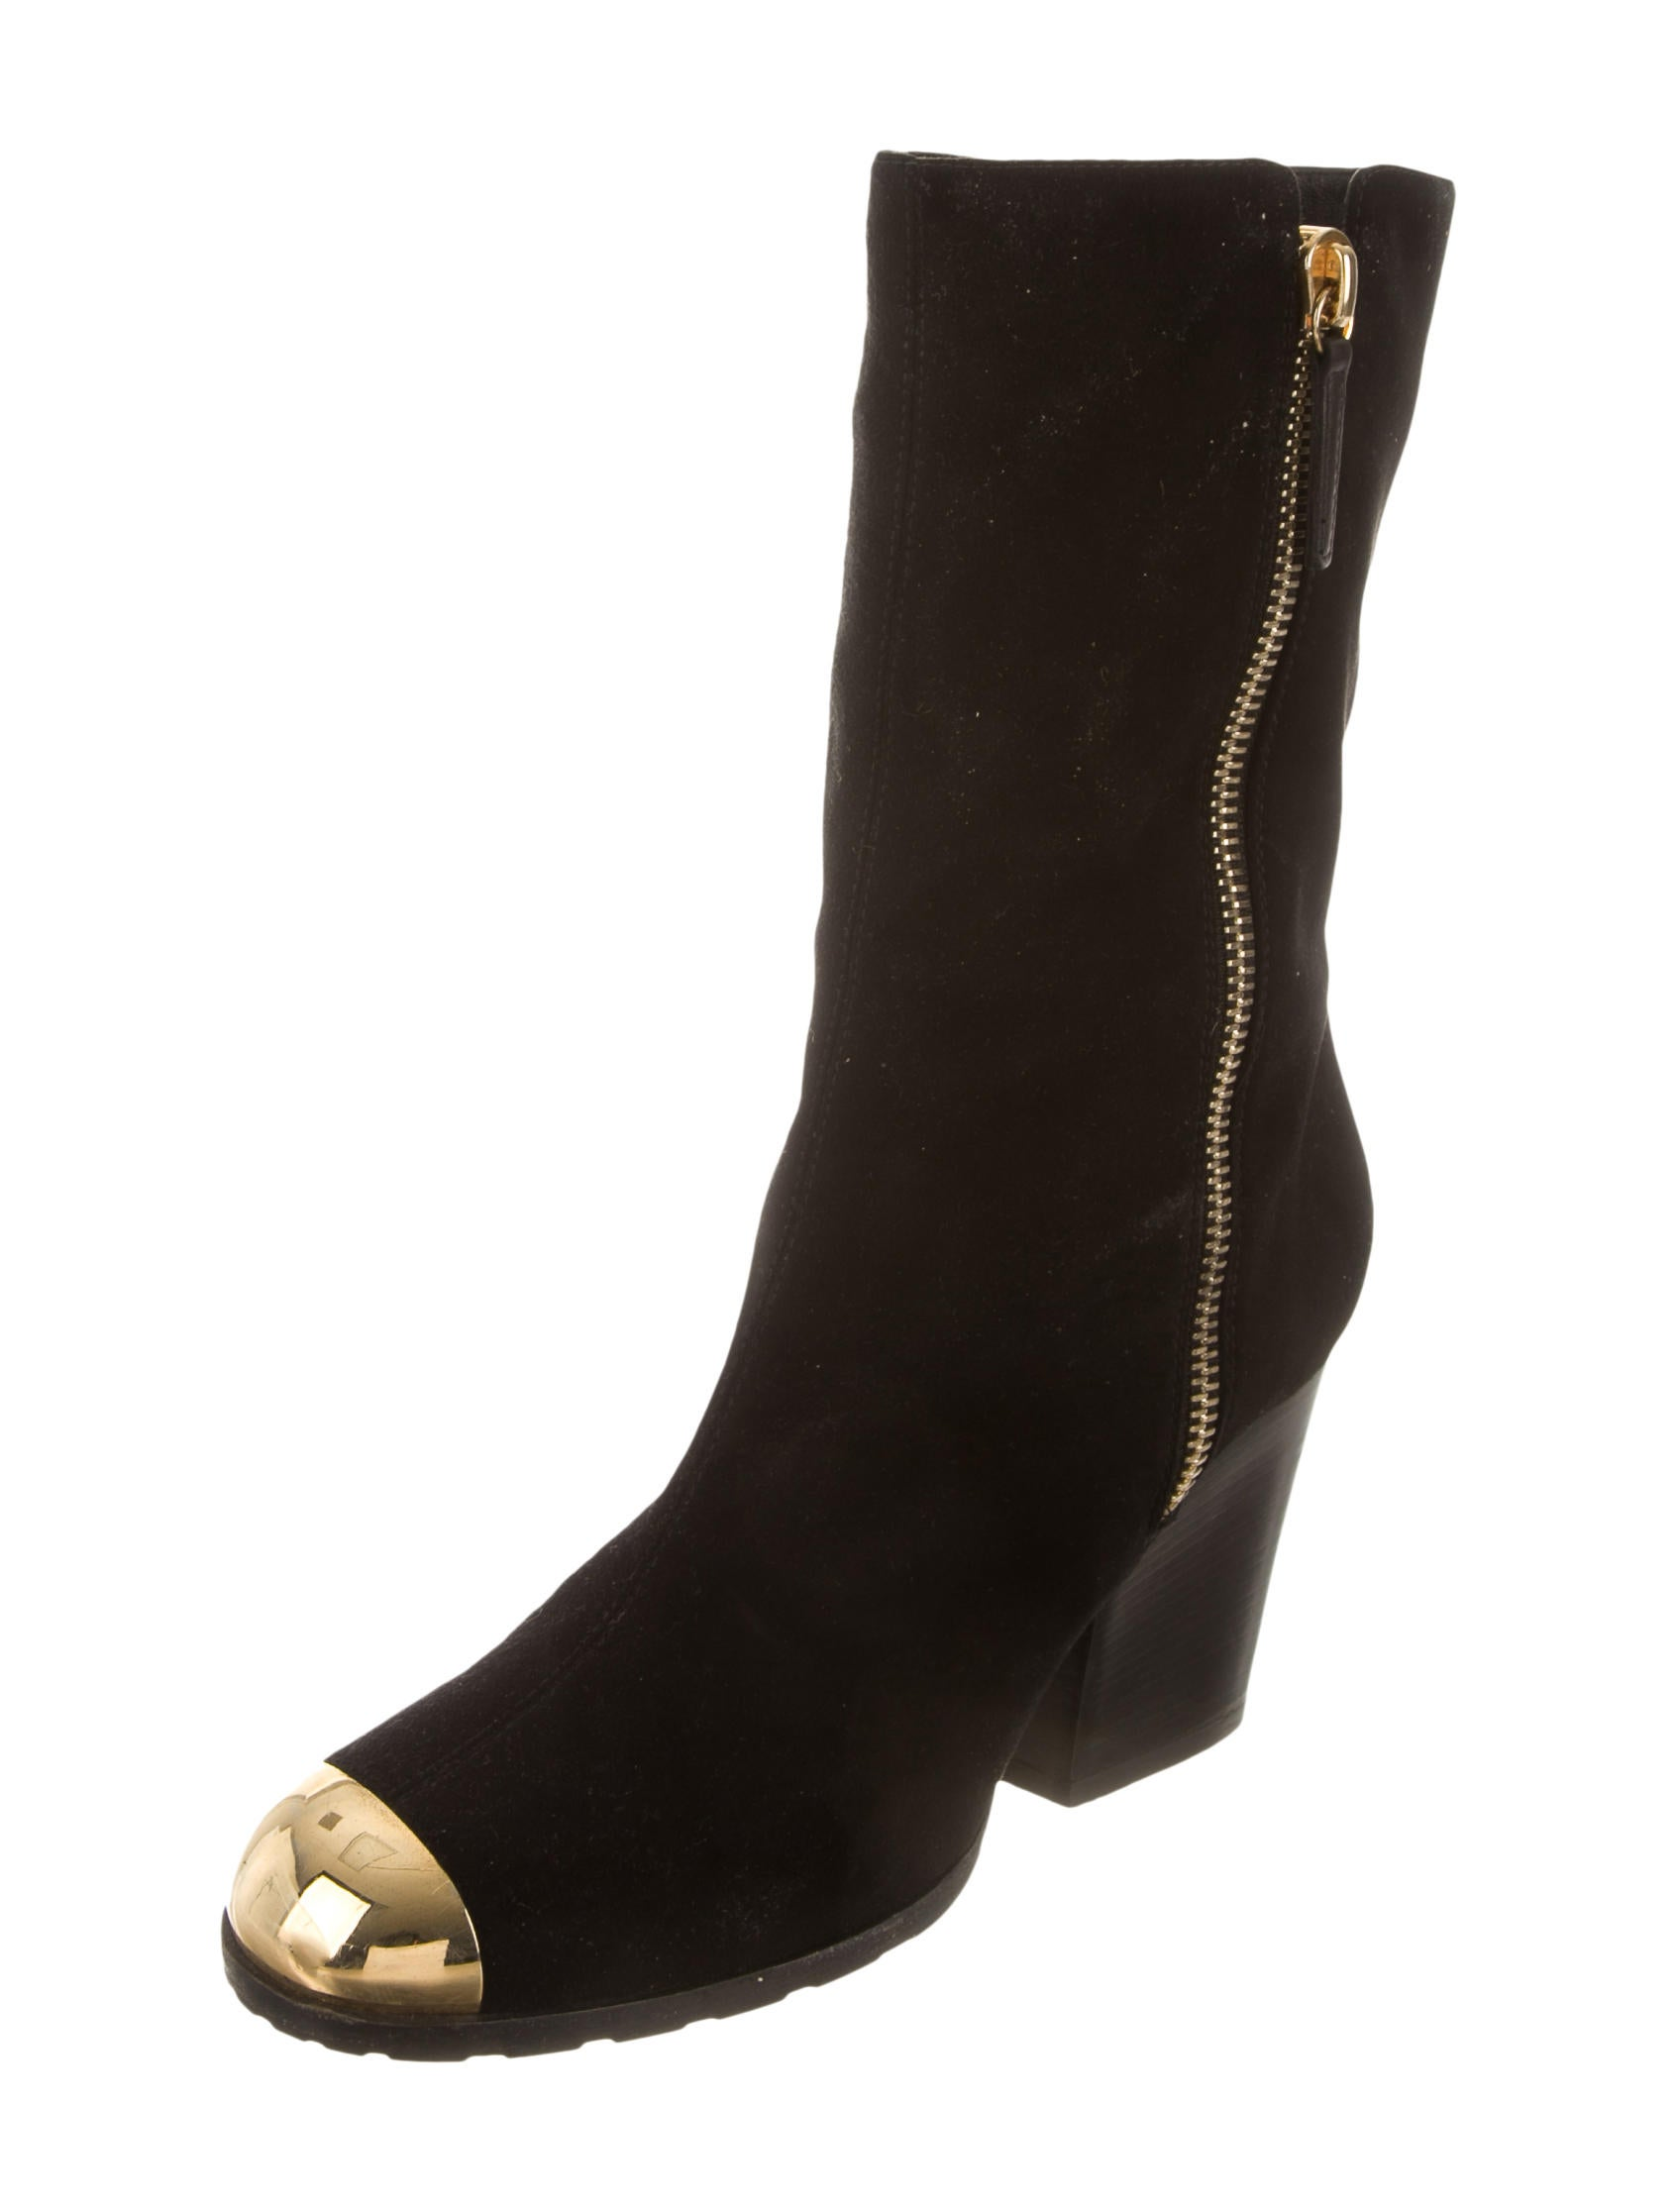 giuseppe zanotti suede cap toe ankle boots shoes